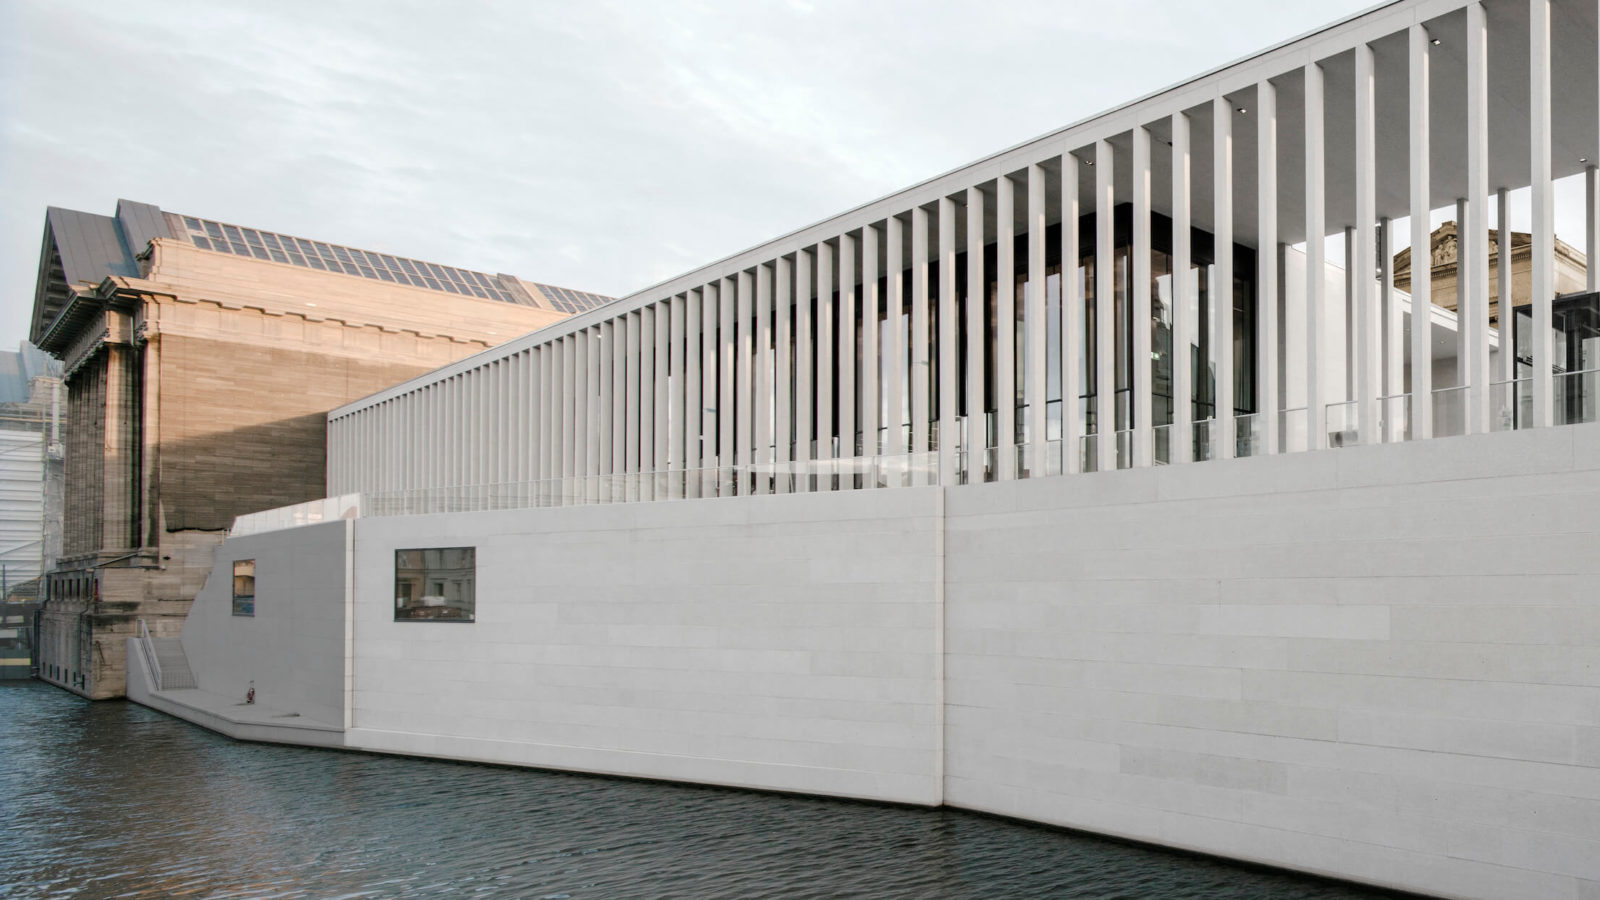 A view of the James Simon Galerie from the river.